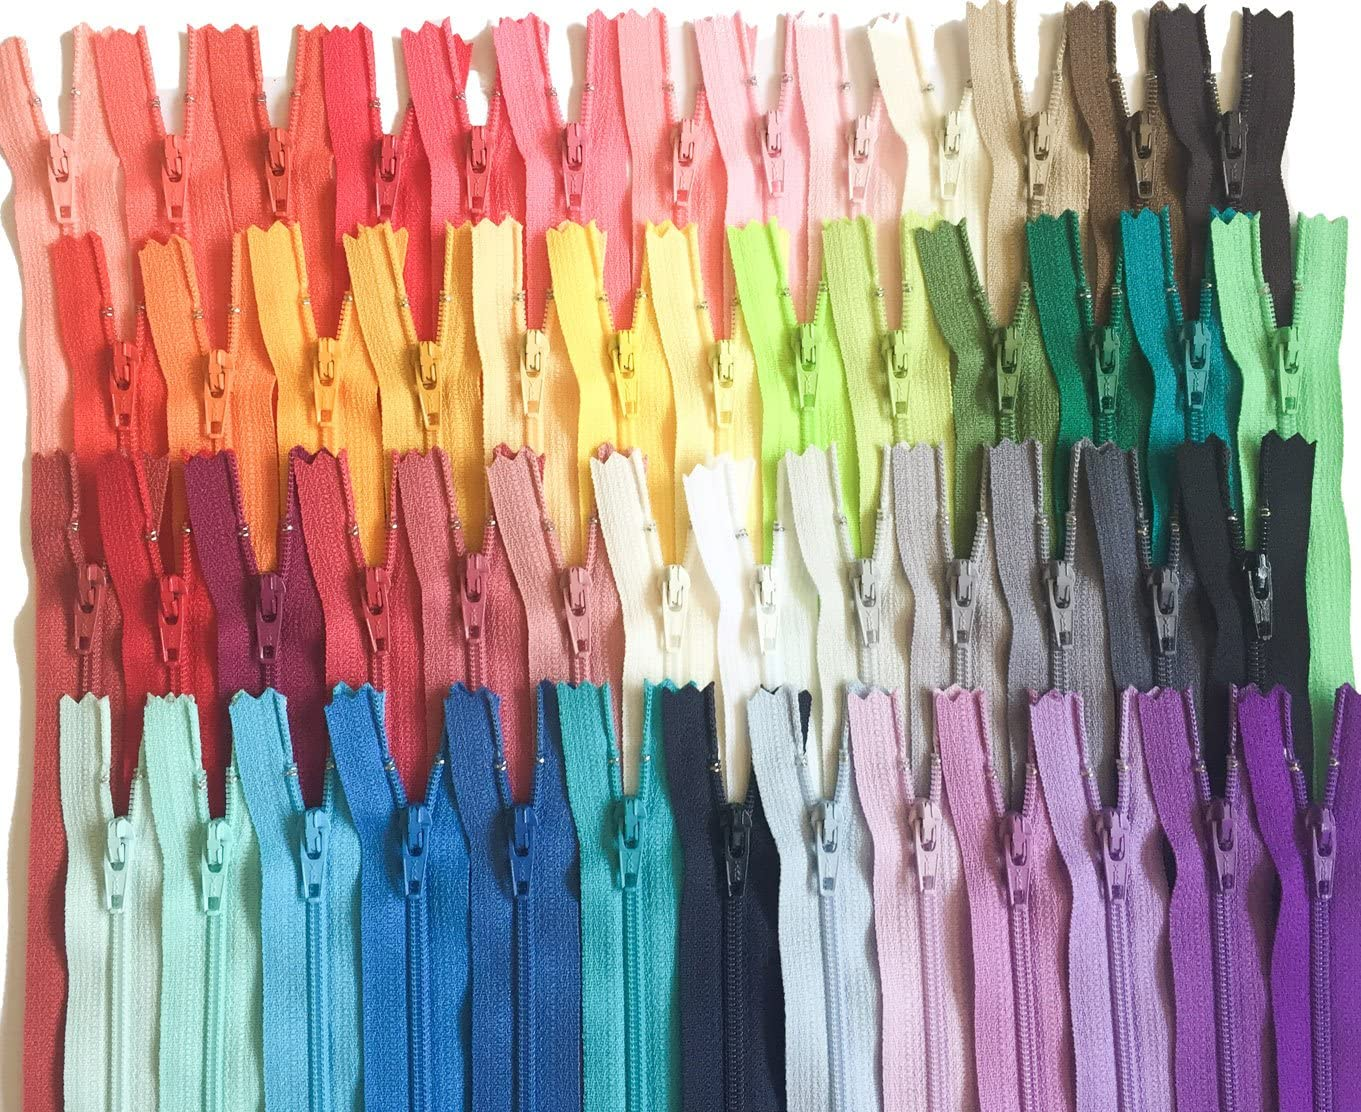 YKK Zippers Assorted Colors Pack 12 Inch Number 3 Nylon Coil Set